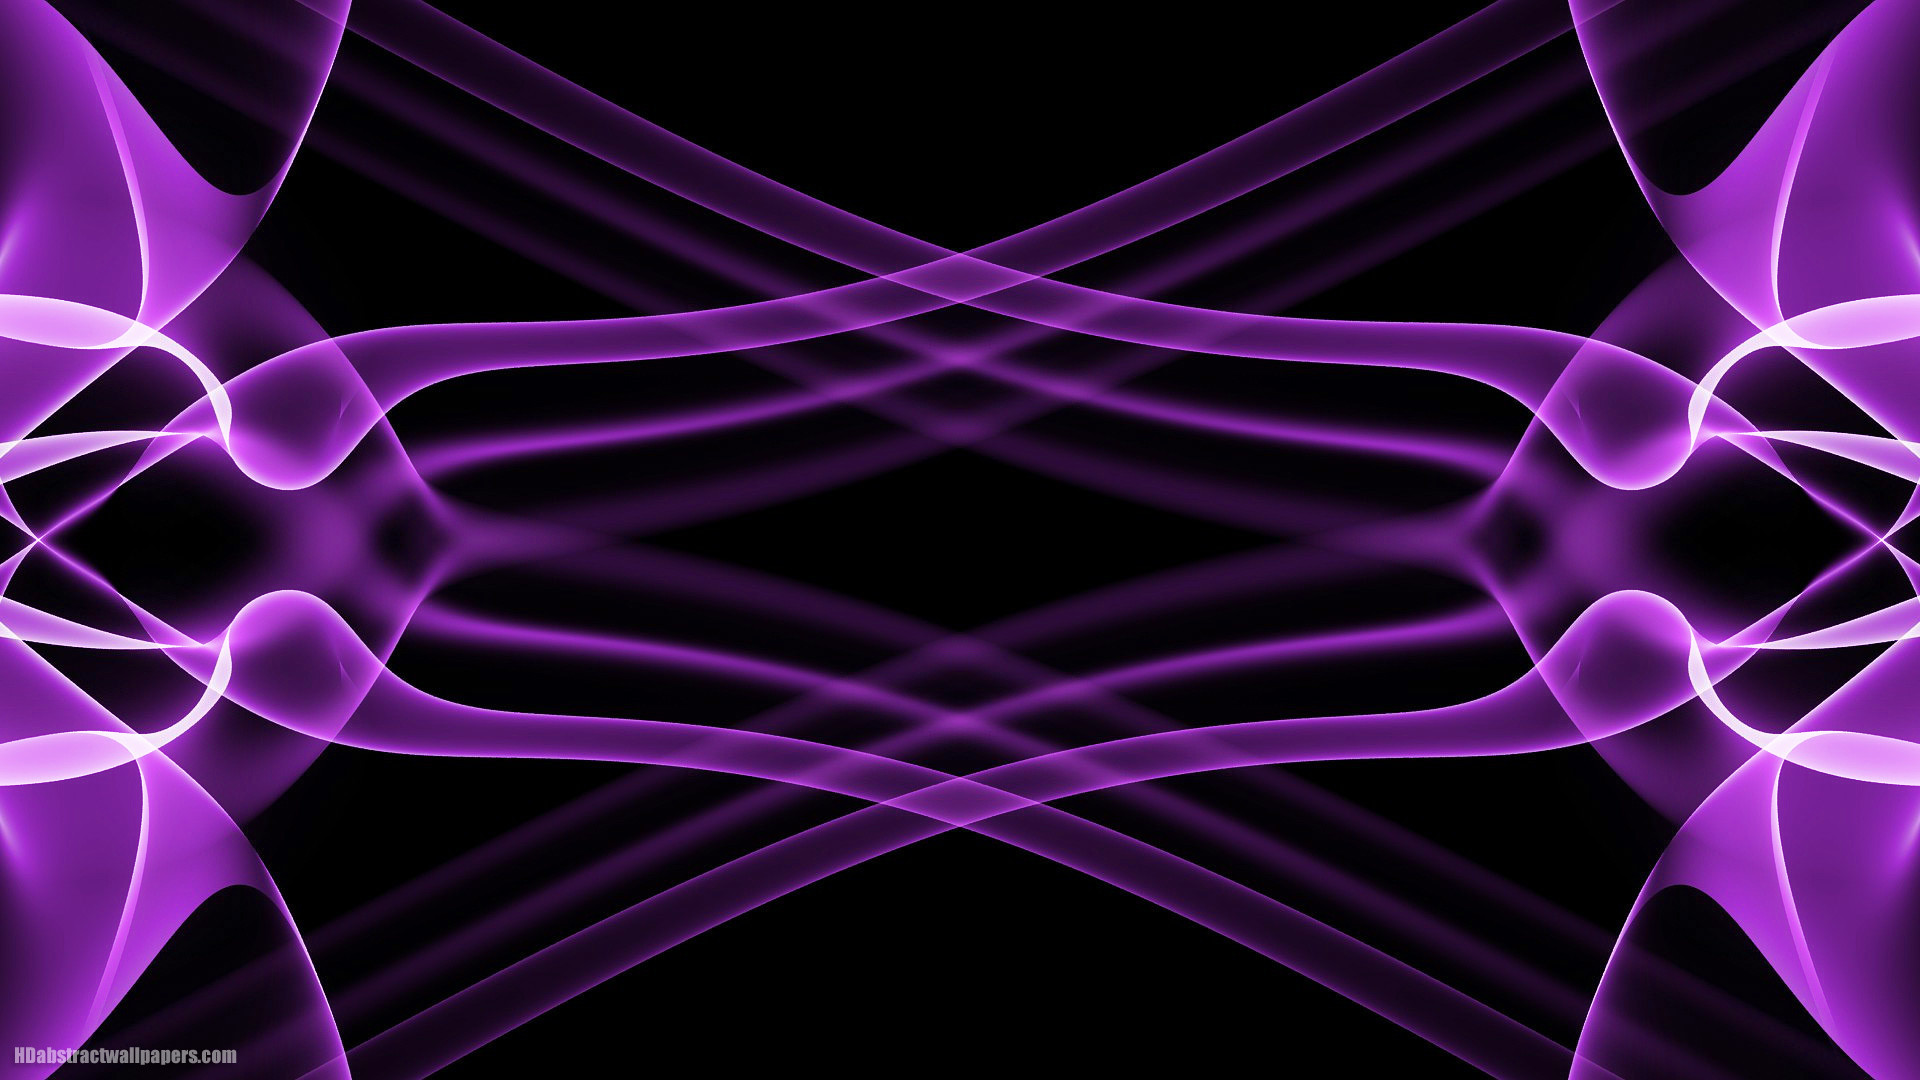 1920x1080 Abstract purple wallpaper